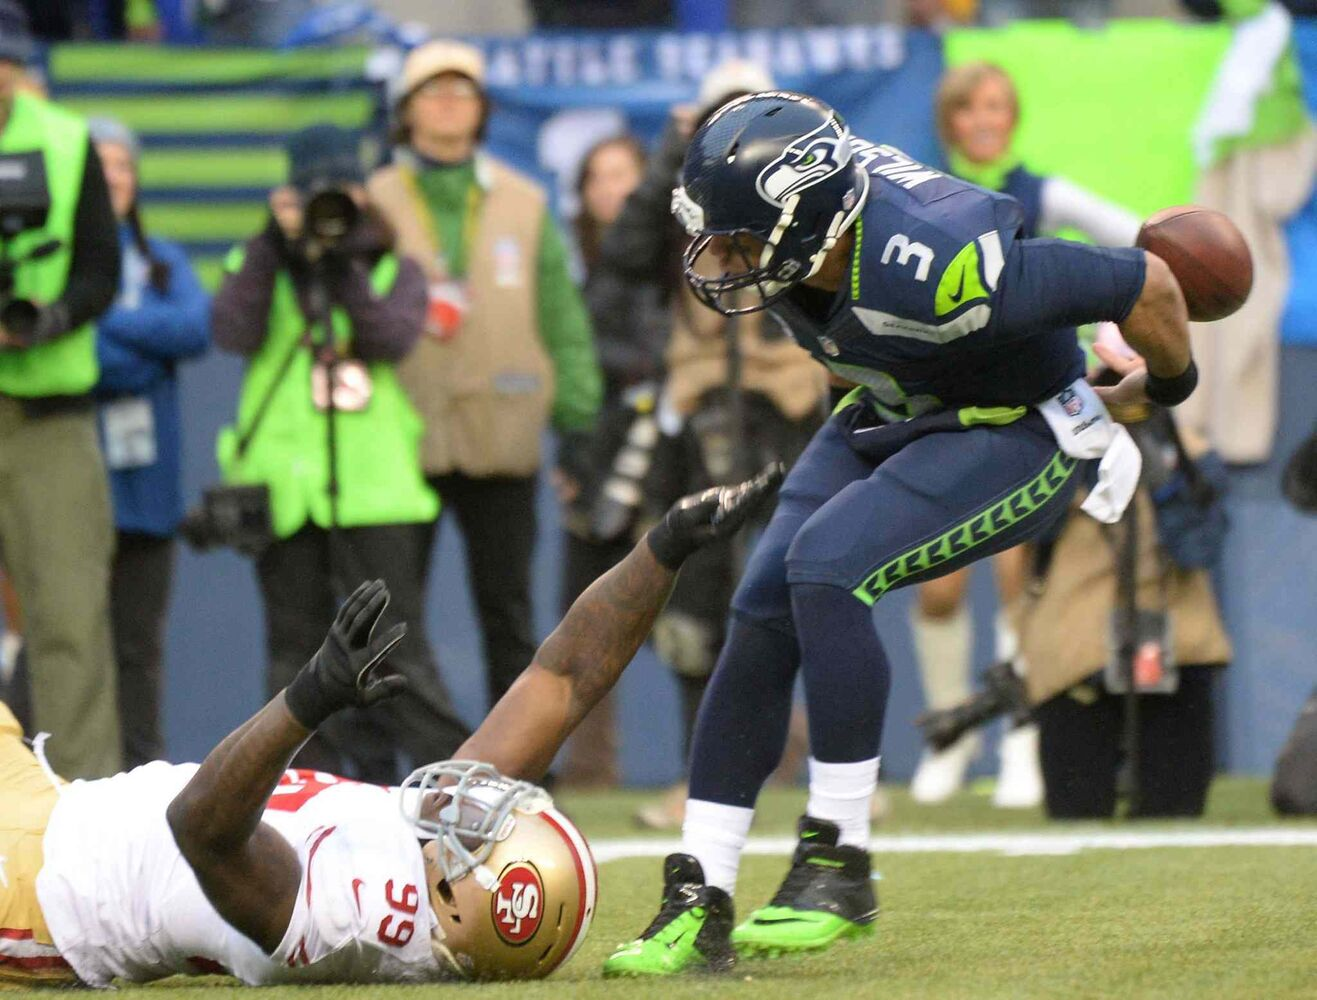 49ers linebacker Aldon Smith forces Seahawks QB Russell Wilson to fumble. (Joe Barrentine / Tribune Media MCT)